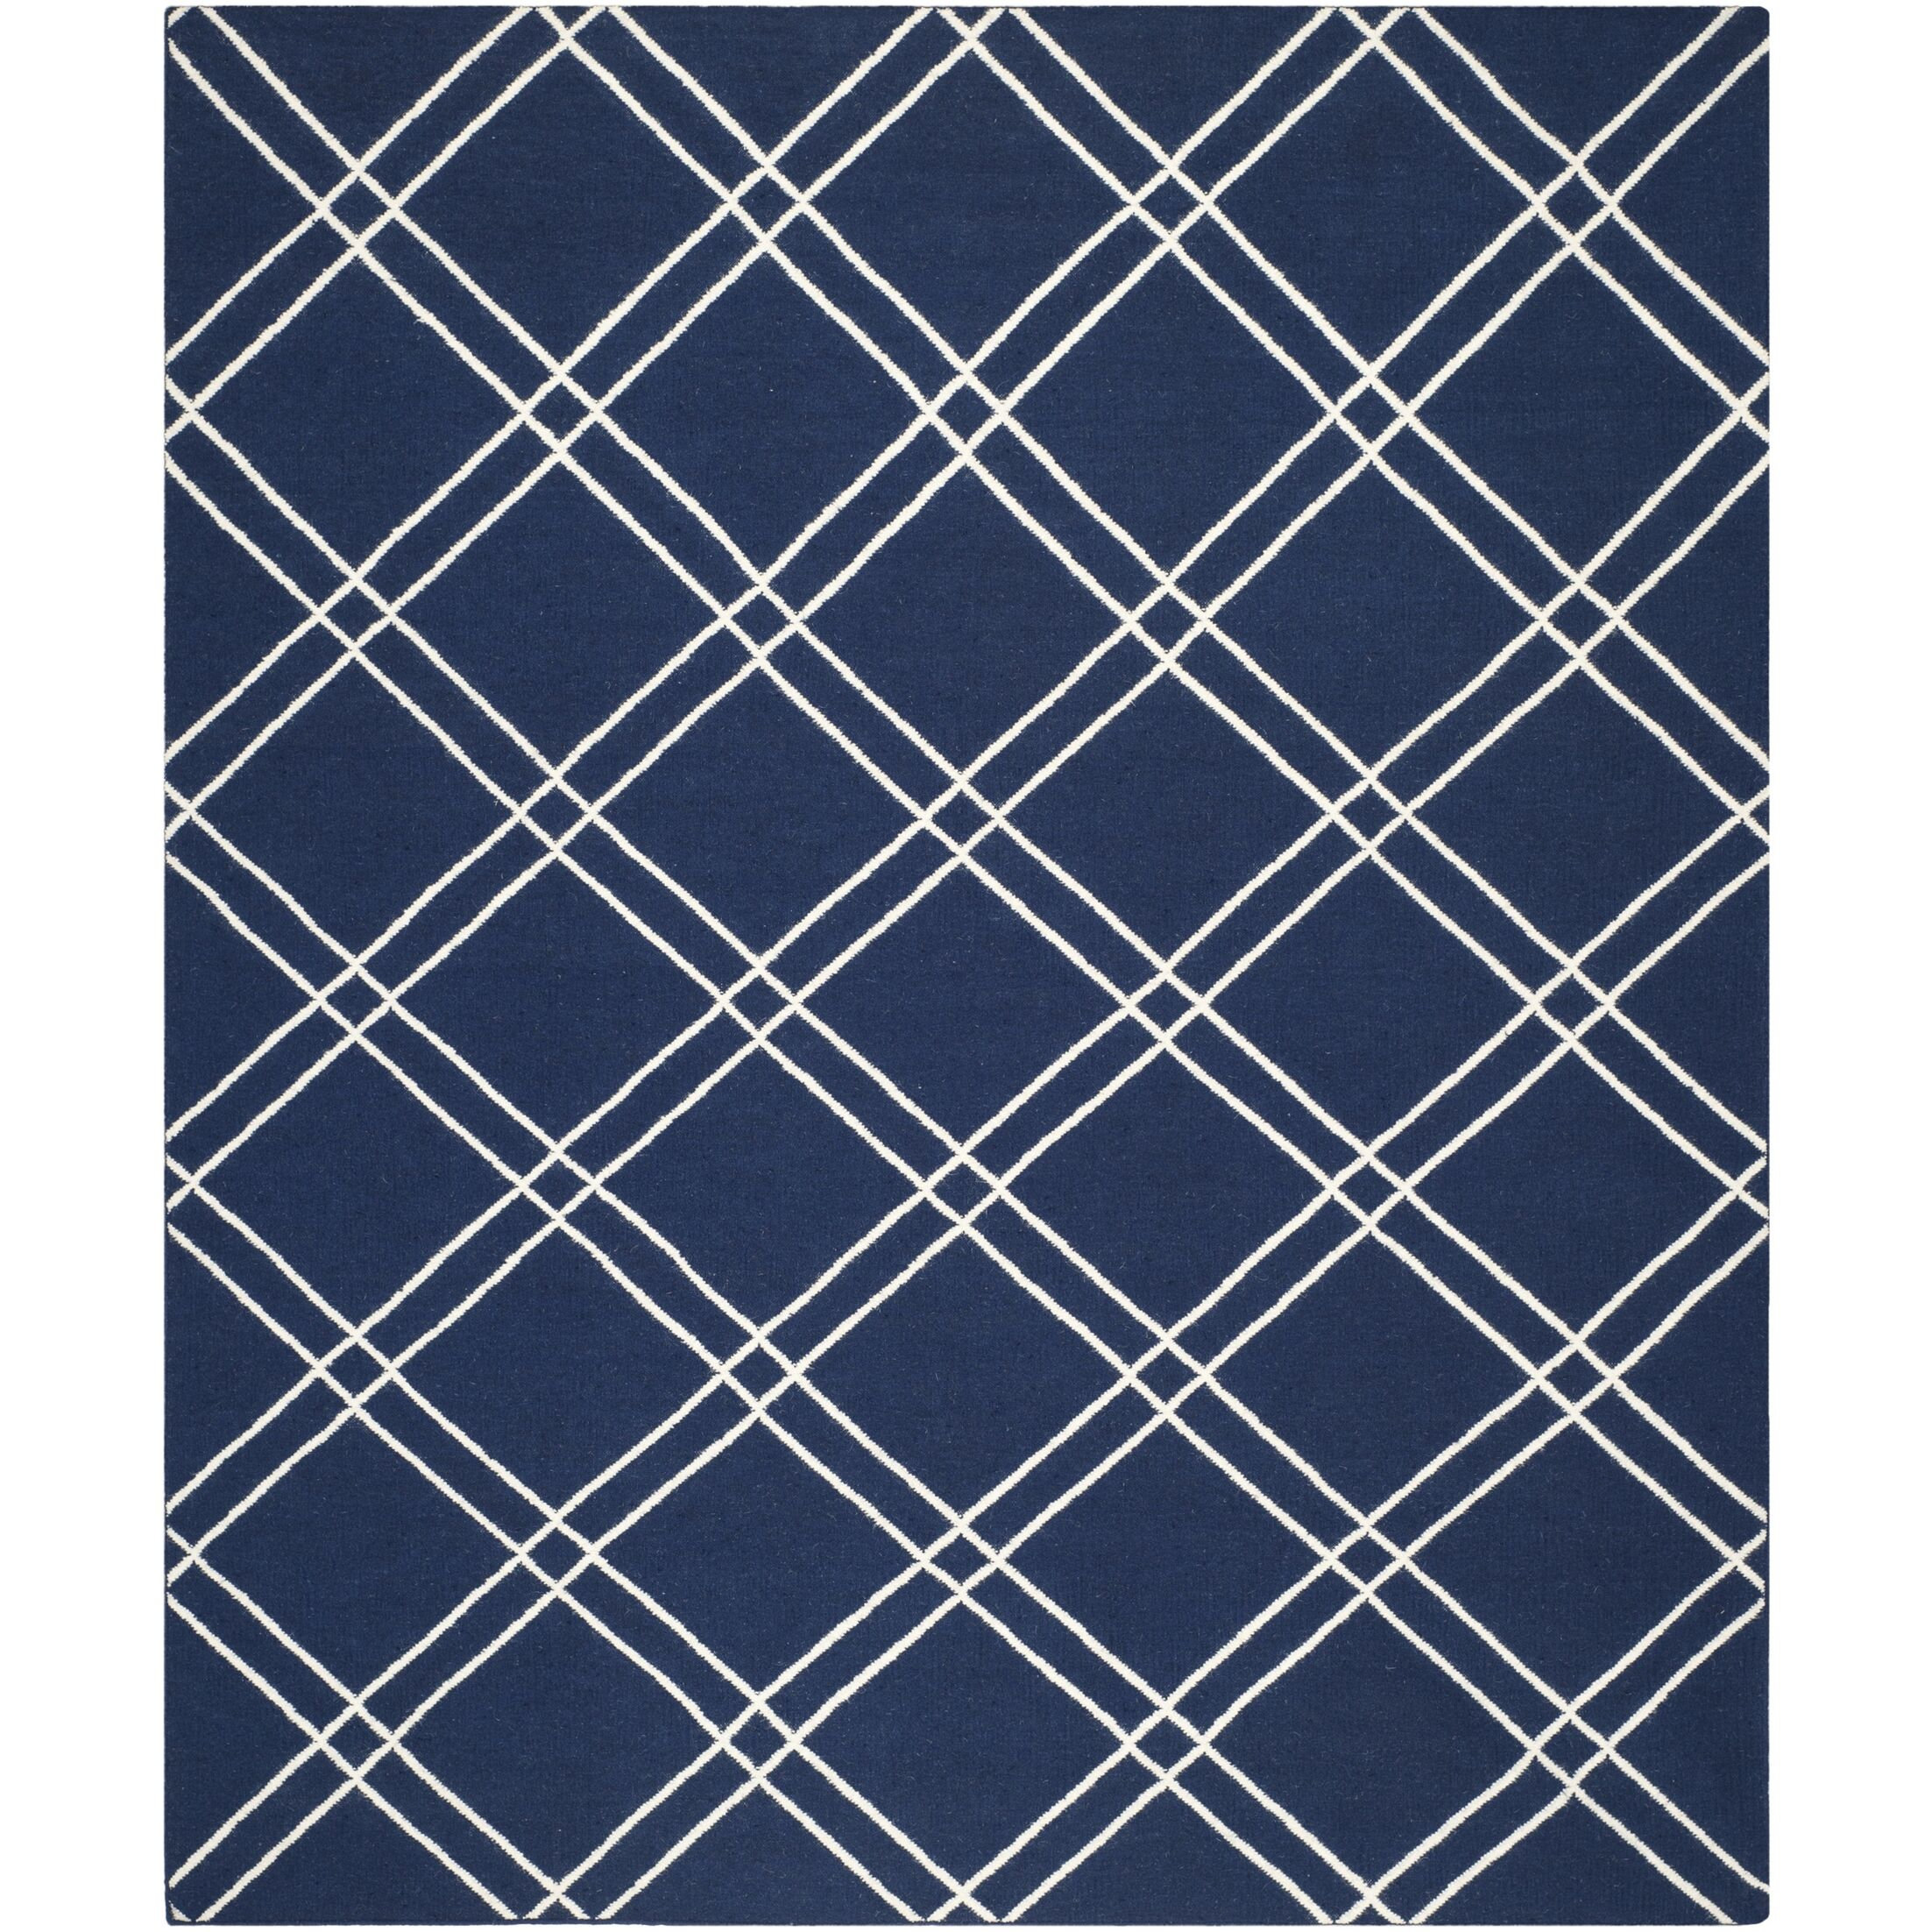 Dhurries Navy/Ivory Area Rug Rug Size: Rectangle 5' x 8'